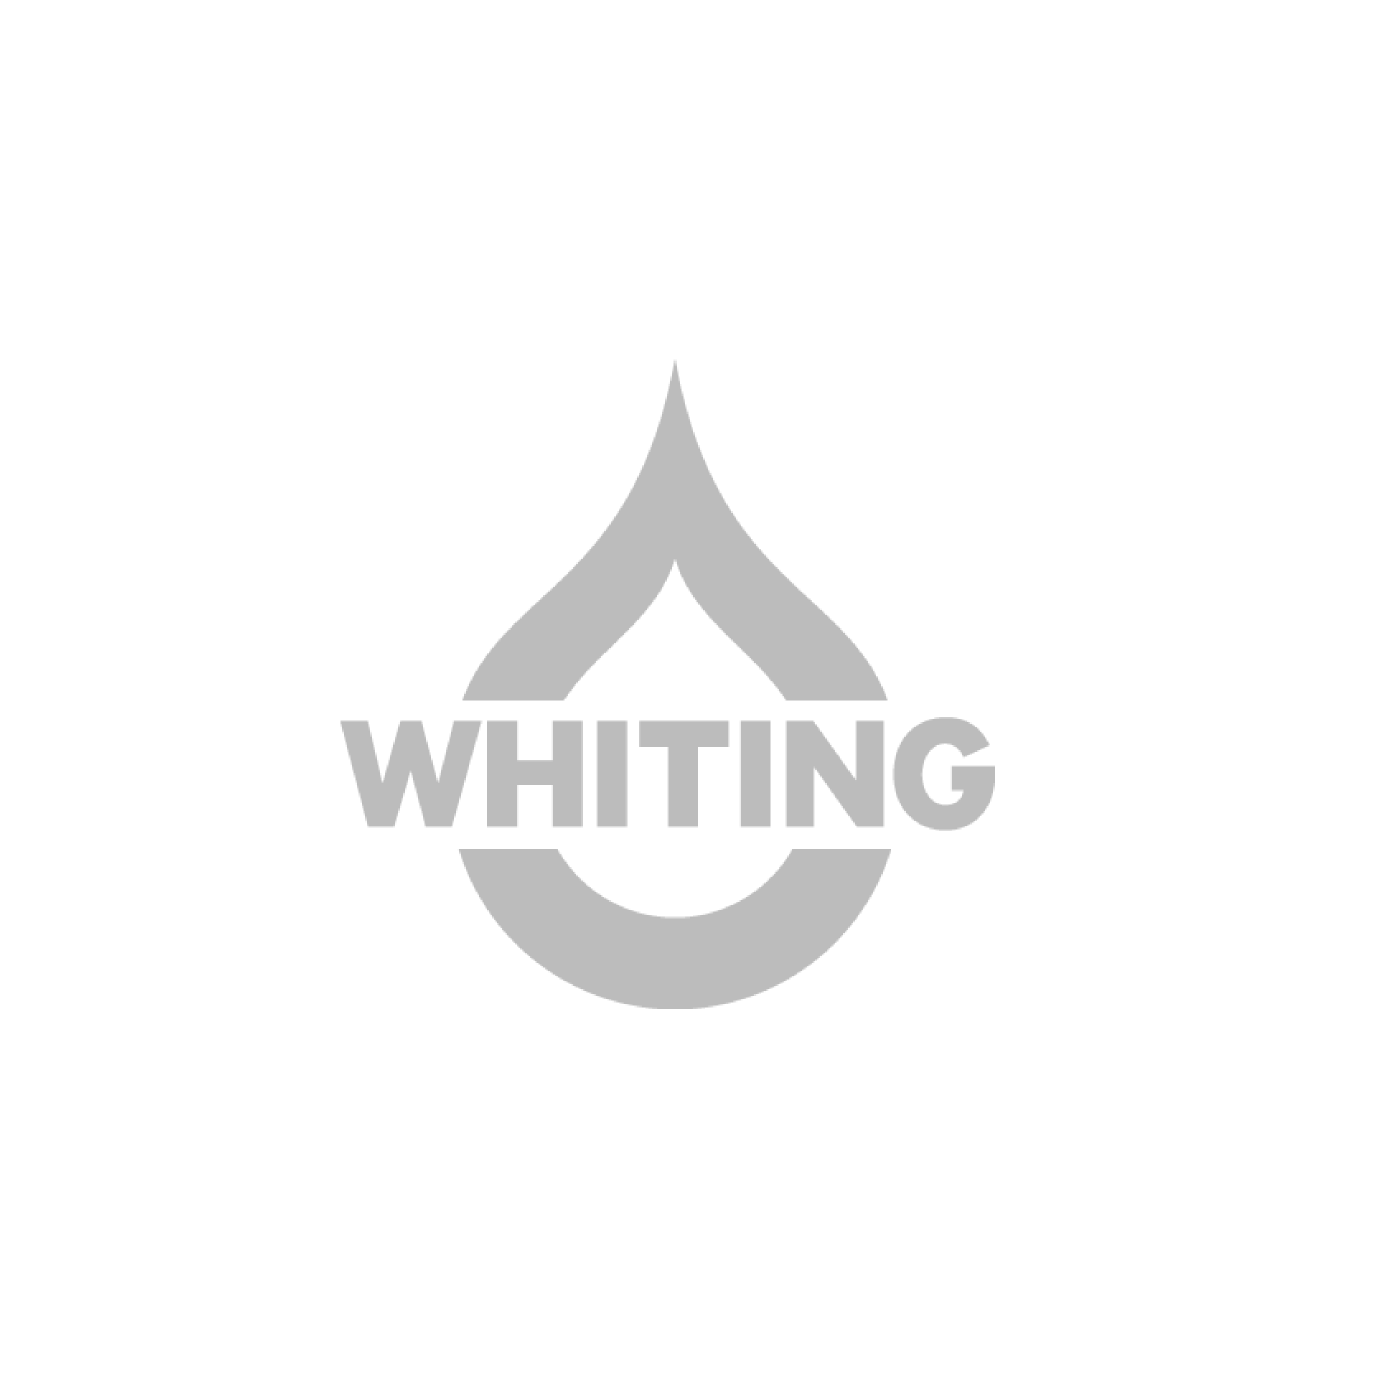 whiting_logo.png